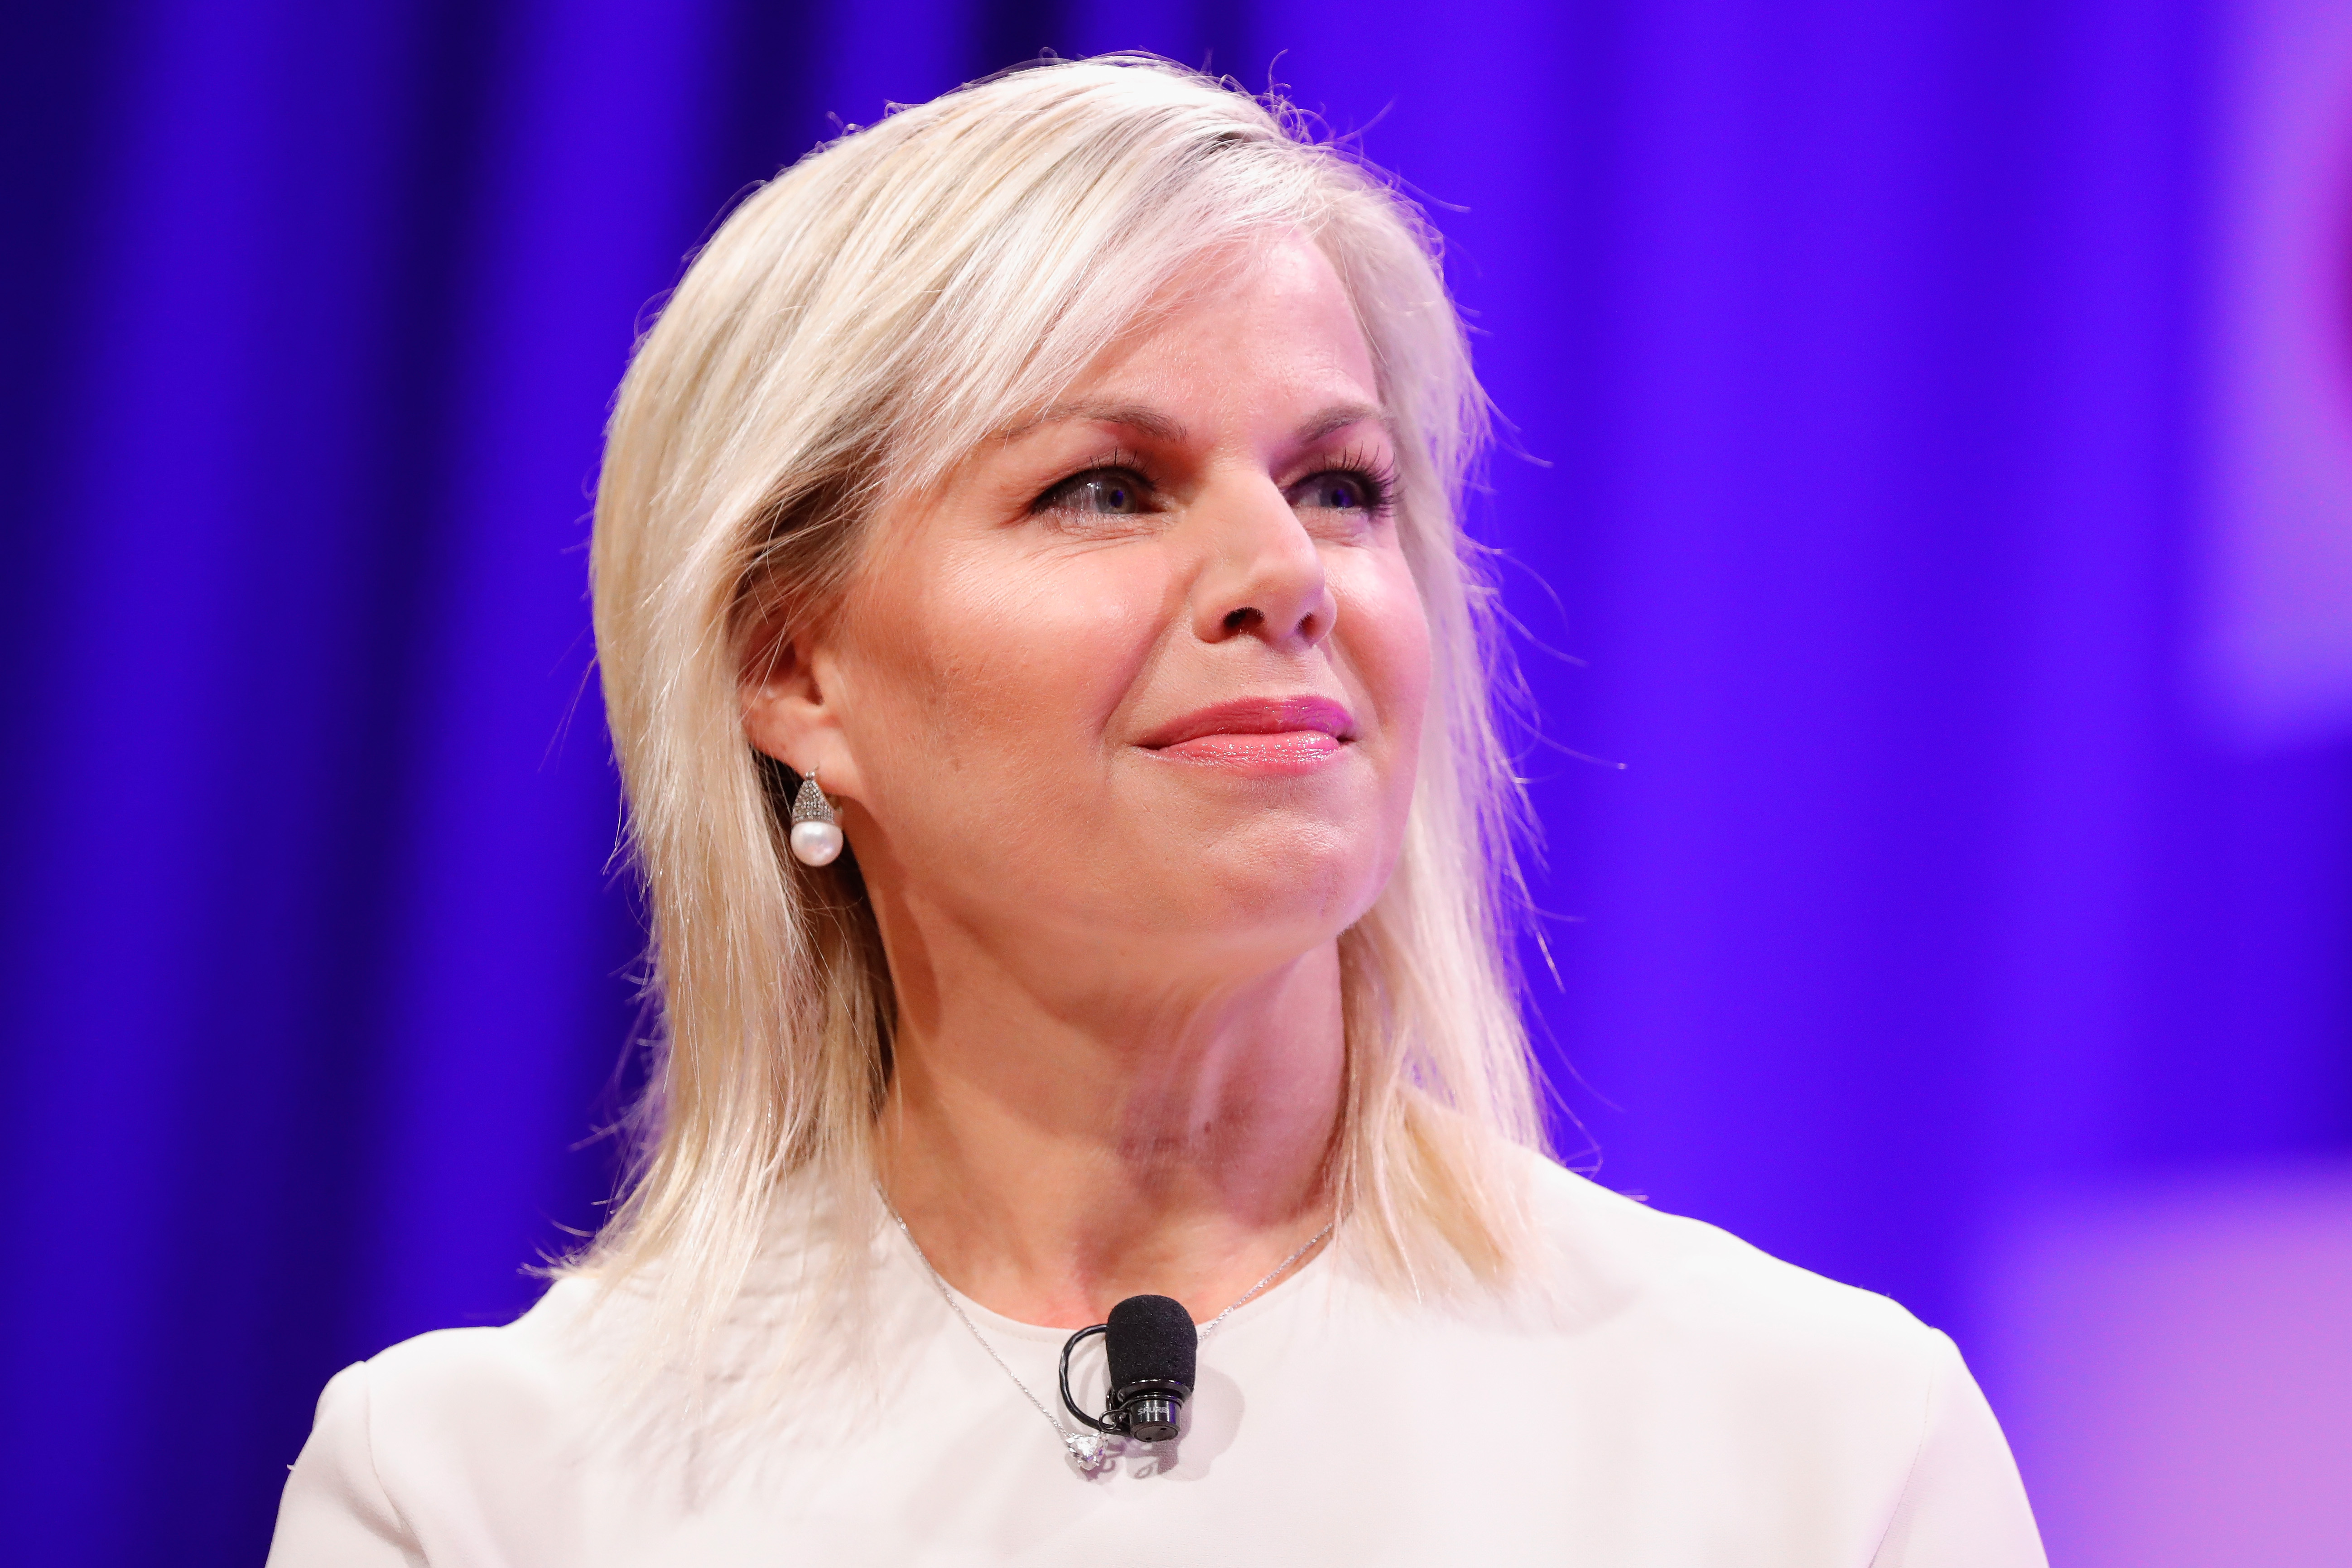 Former Fox News anchor Gretchen Carlson speaks onstage at the Fortune Most Powerful Women Summit on Oct. 11, 2017 in Washington, D.C.